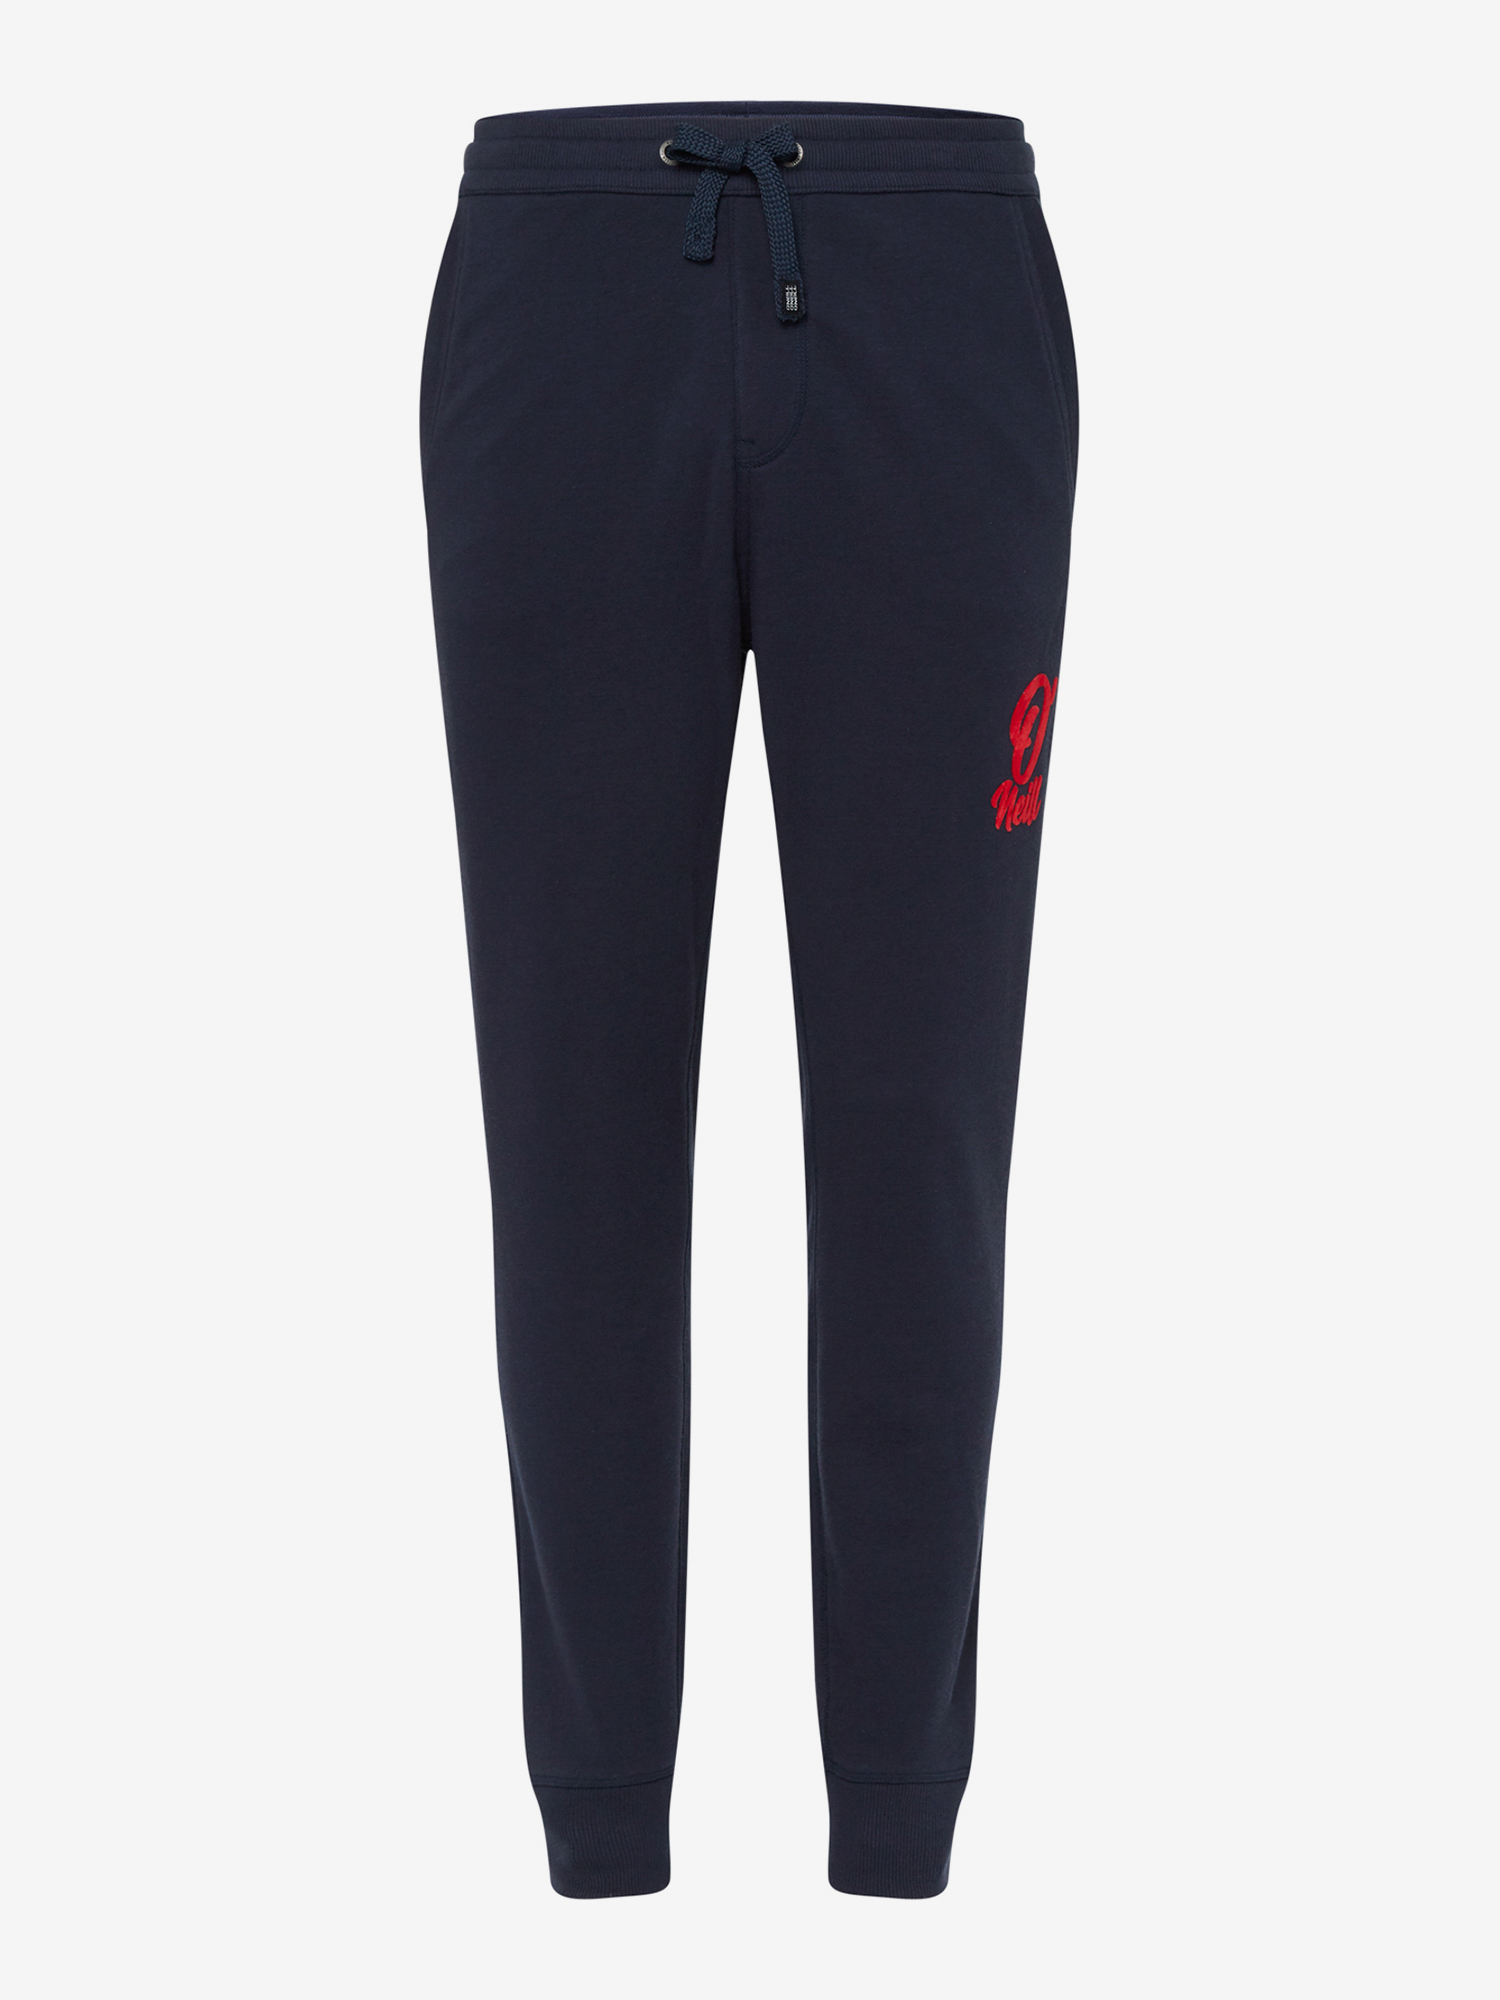 Tepláky O´Neill Lm Cliff Sweatpants (1)